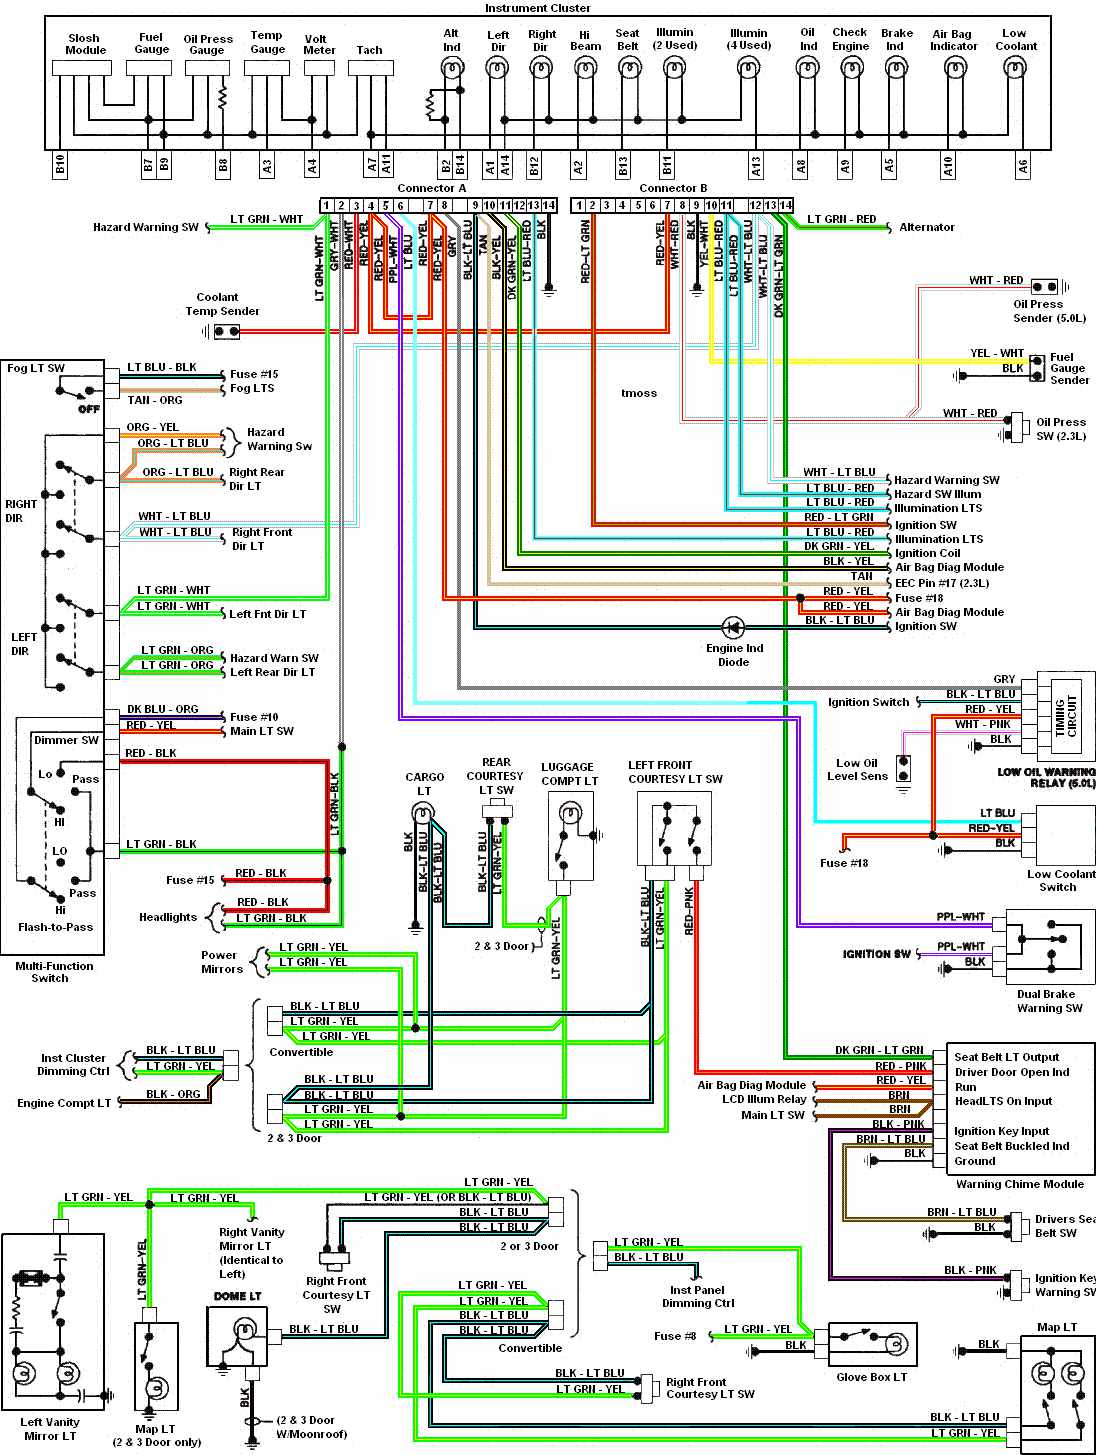 2006 Mustang Wiring Diagram - Center Wiring Diagram cup-housing -  cup-housing.iosonointersex.itiosonointersex.it